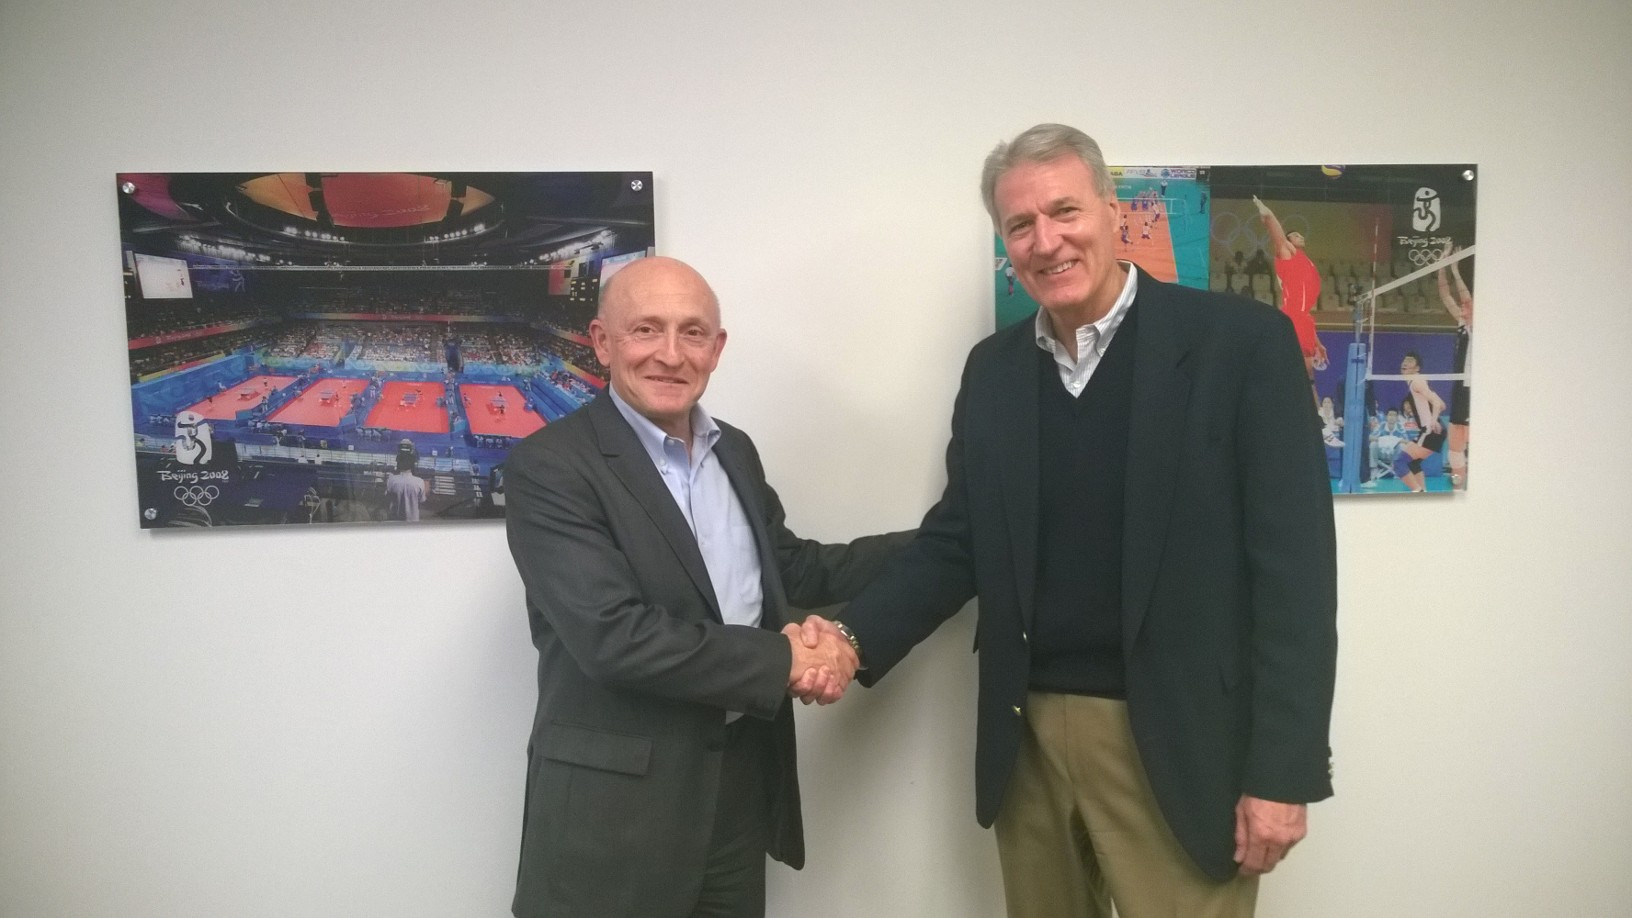 Chammas and Cerny Shake Hands as Connor Sport Court joins Gerflor